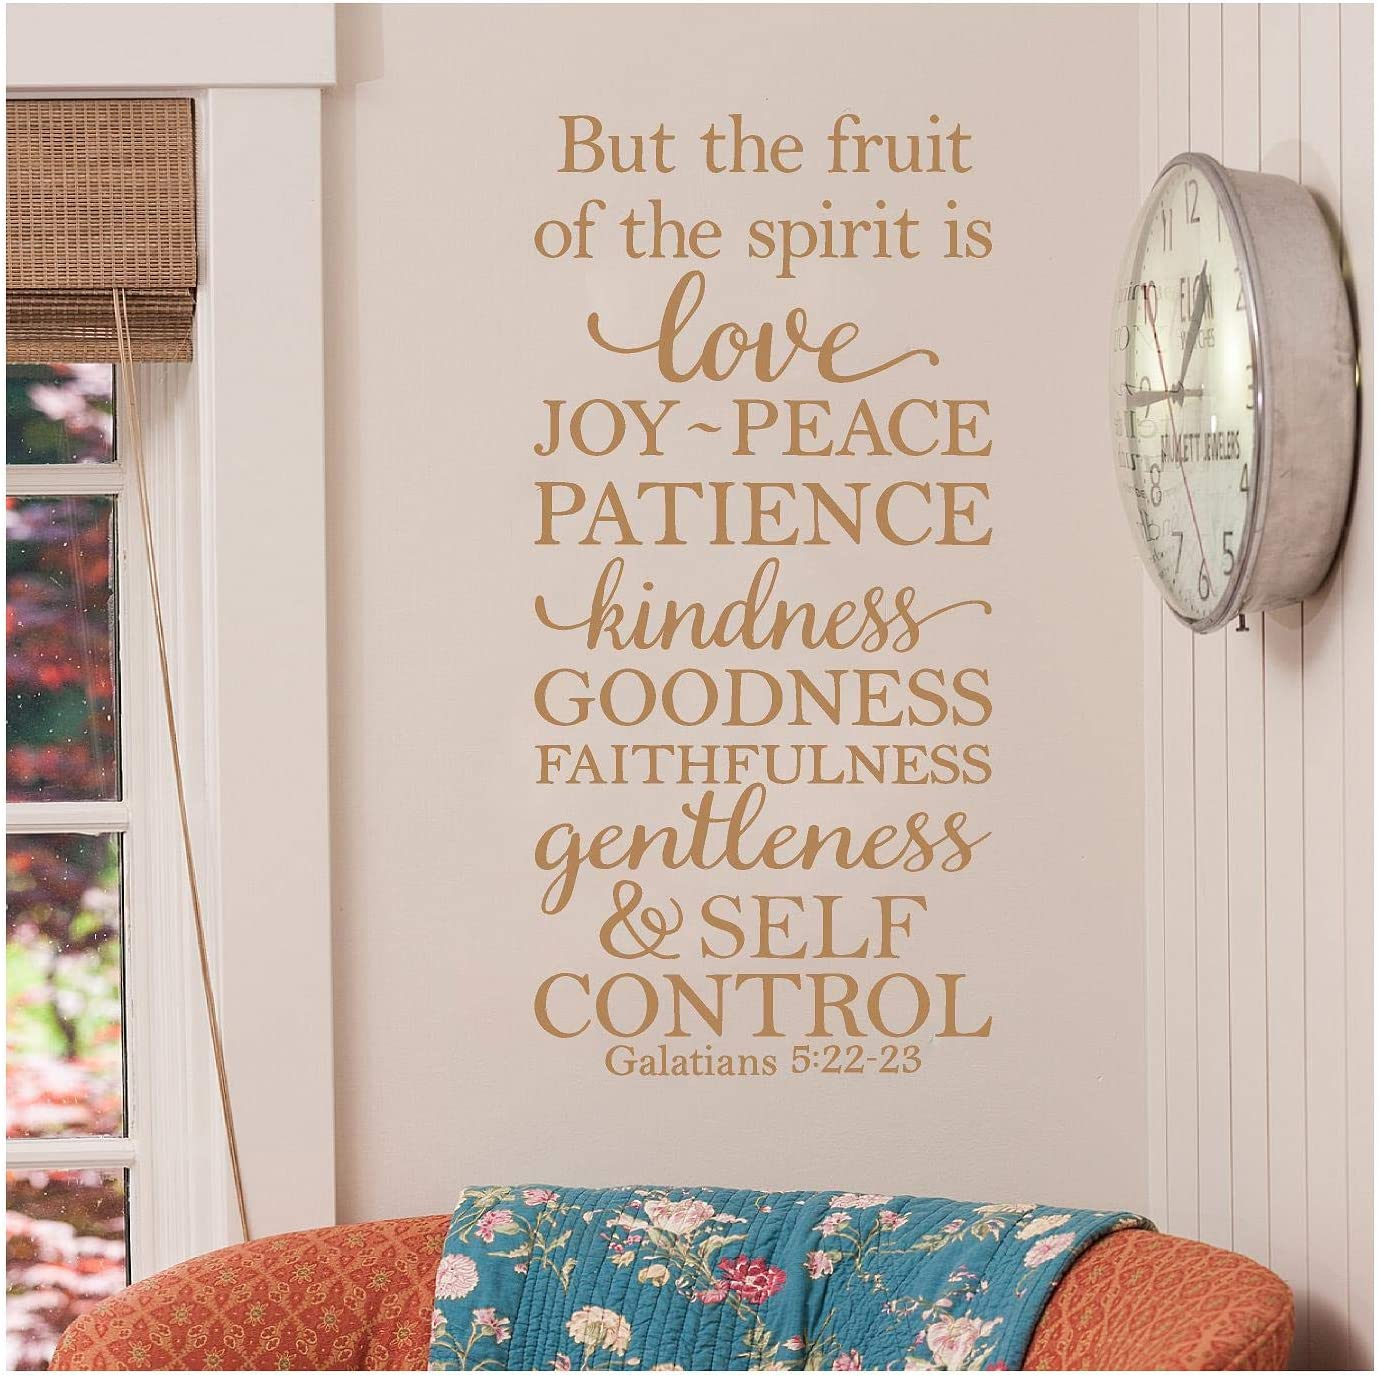 "But The Fruit of The Spirit is Love, Joy, Peace, Patience, Kindness, Goodness, Faithfulness.Galatians 5:22-23 Vinyl Lettering Wall Decal Sticker (26""H x 12.5""W, Metallic Gold)"